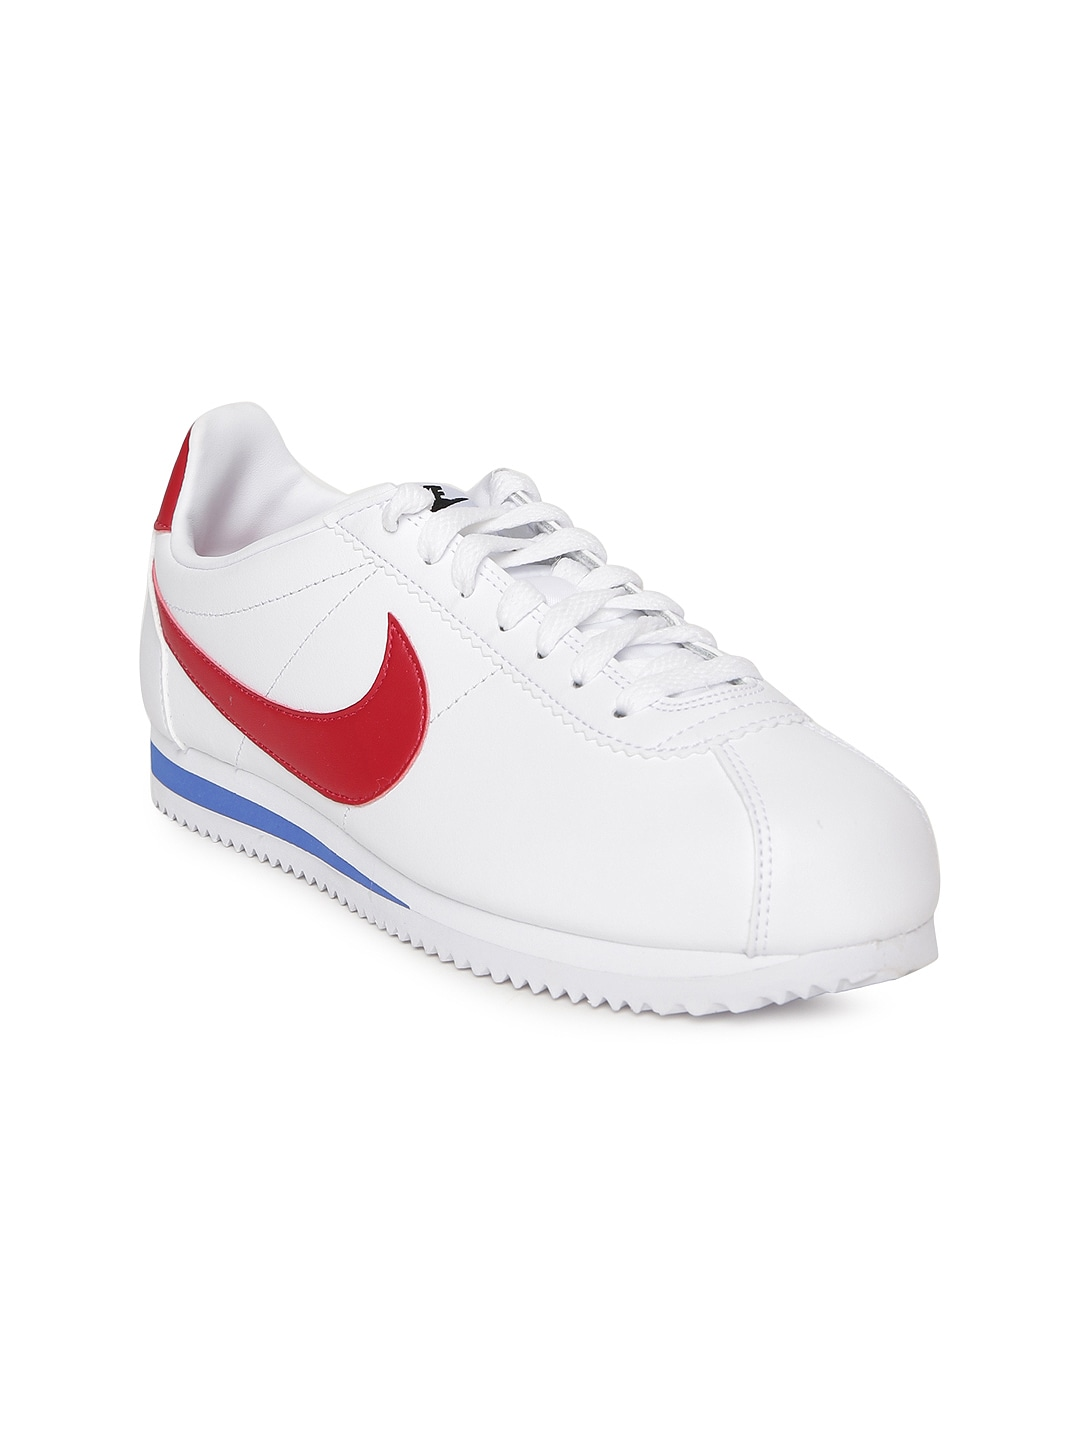 best sneakers 65232 e5817 Nike Cortez Casual Shoes - Buy Nike Cortez Casual Shoes online in India